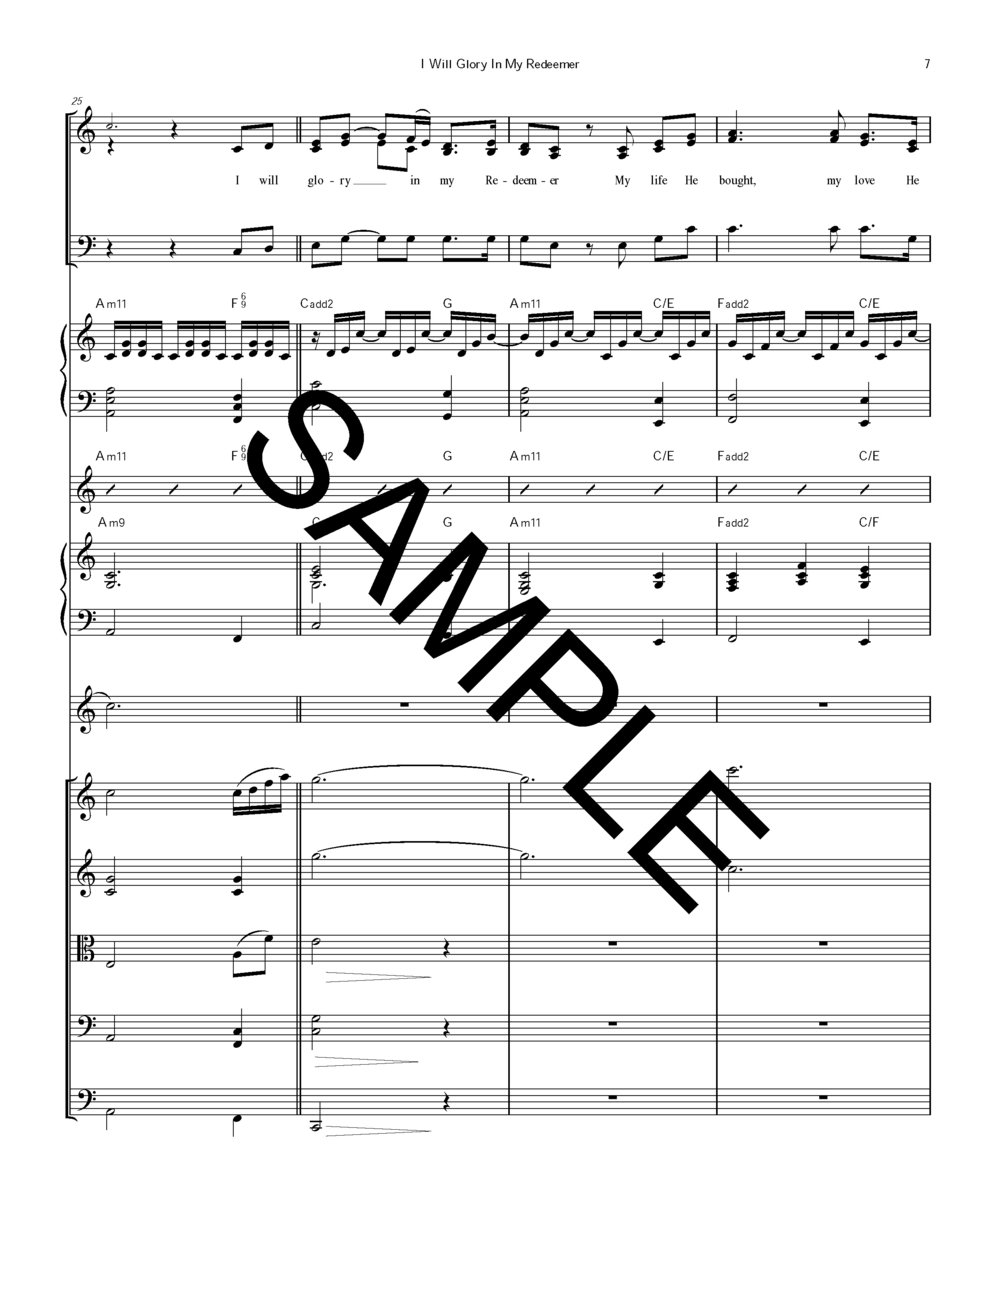 Sample I Will Glory in My Redeemer #196 Strngs Ob Piano Chrd Chrt Orgn M Rice arr_Page_20.jpg